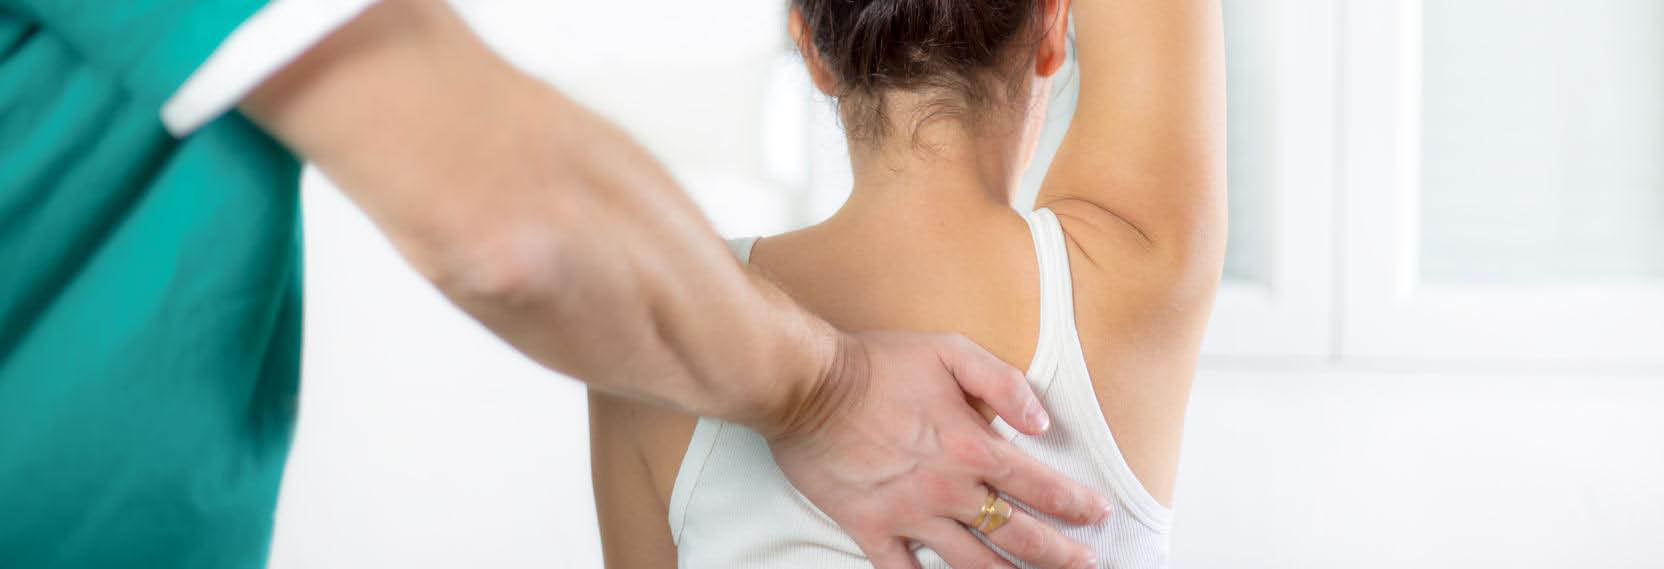 Chiropractor in New Albany, IN, Back pain specialist